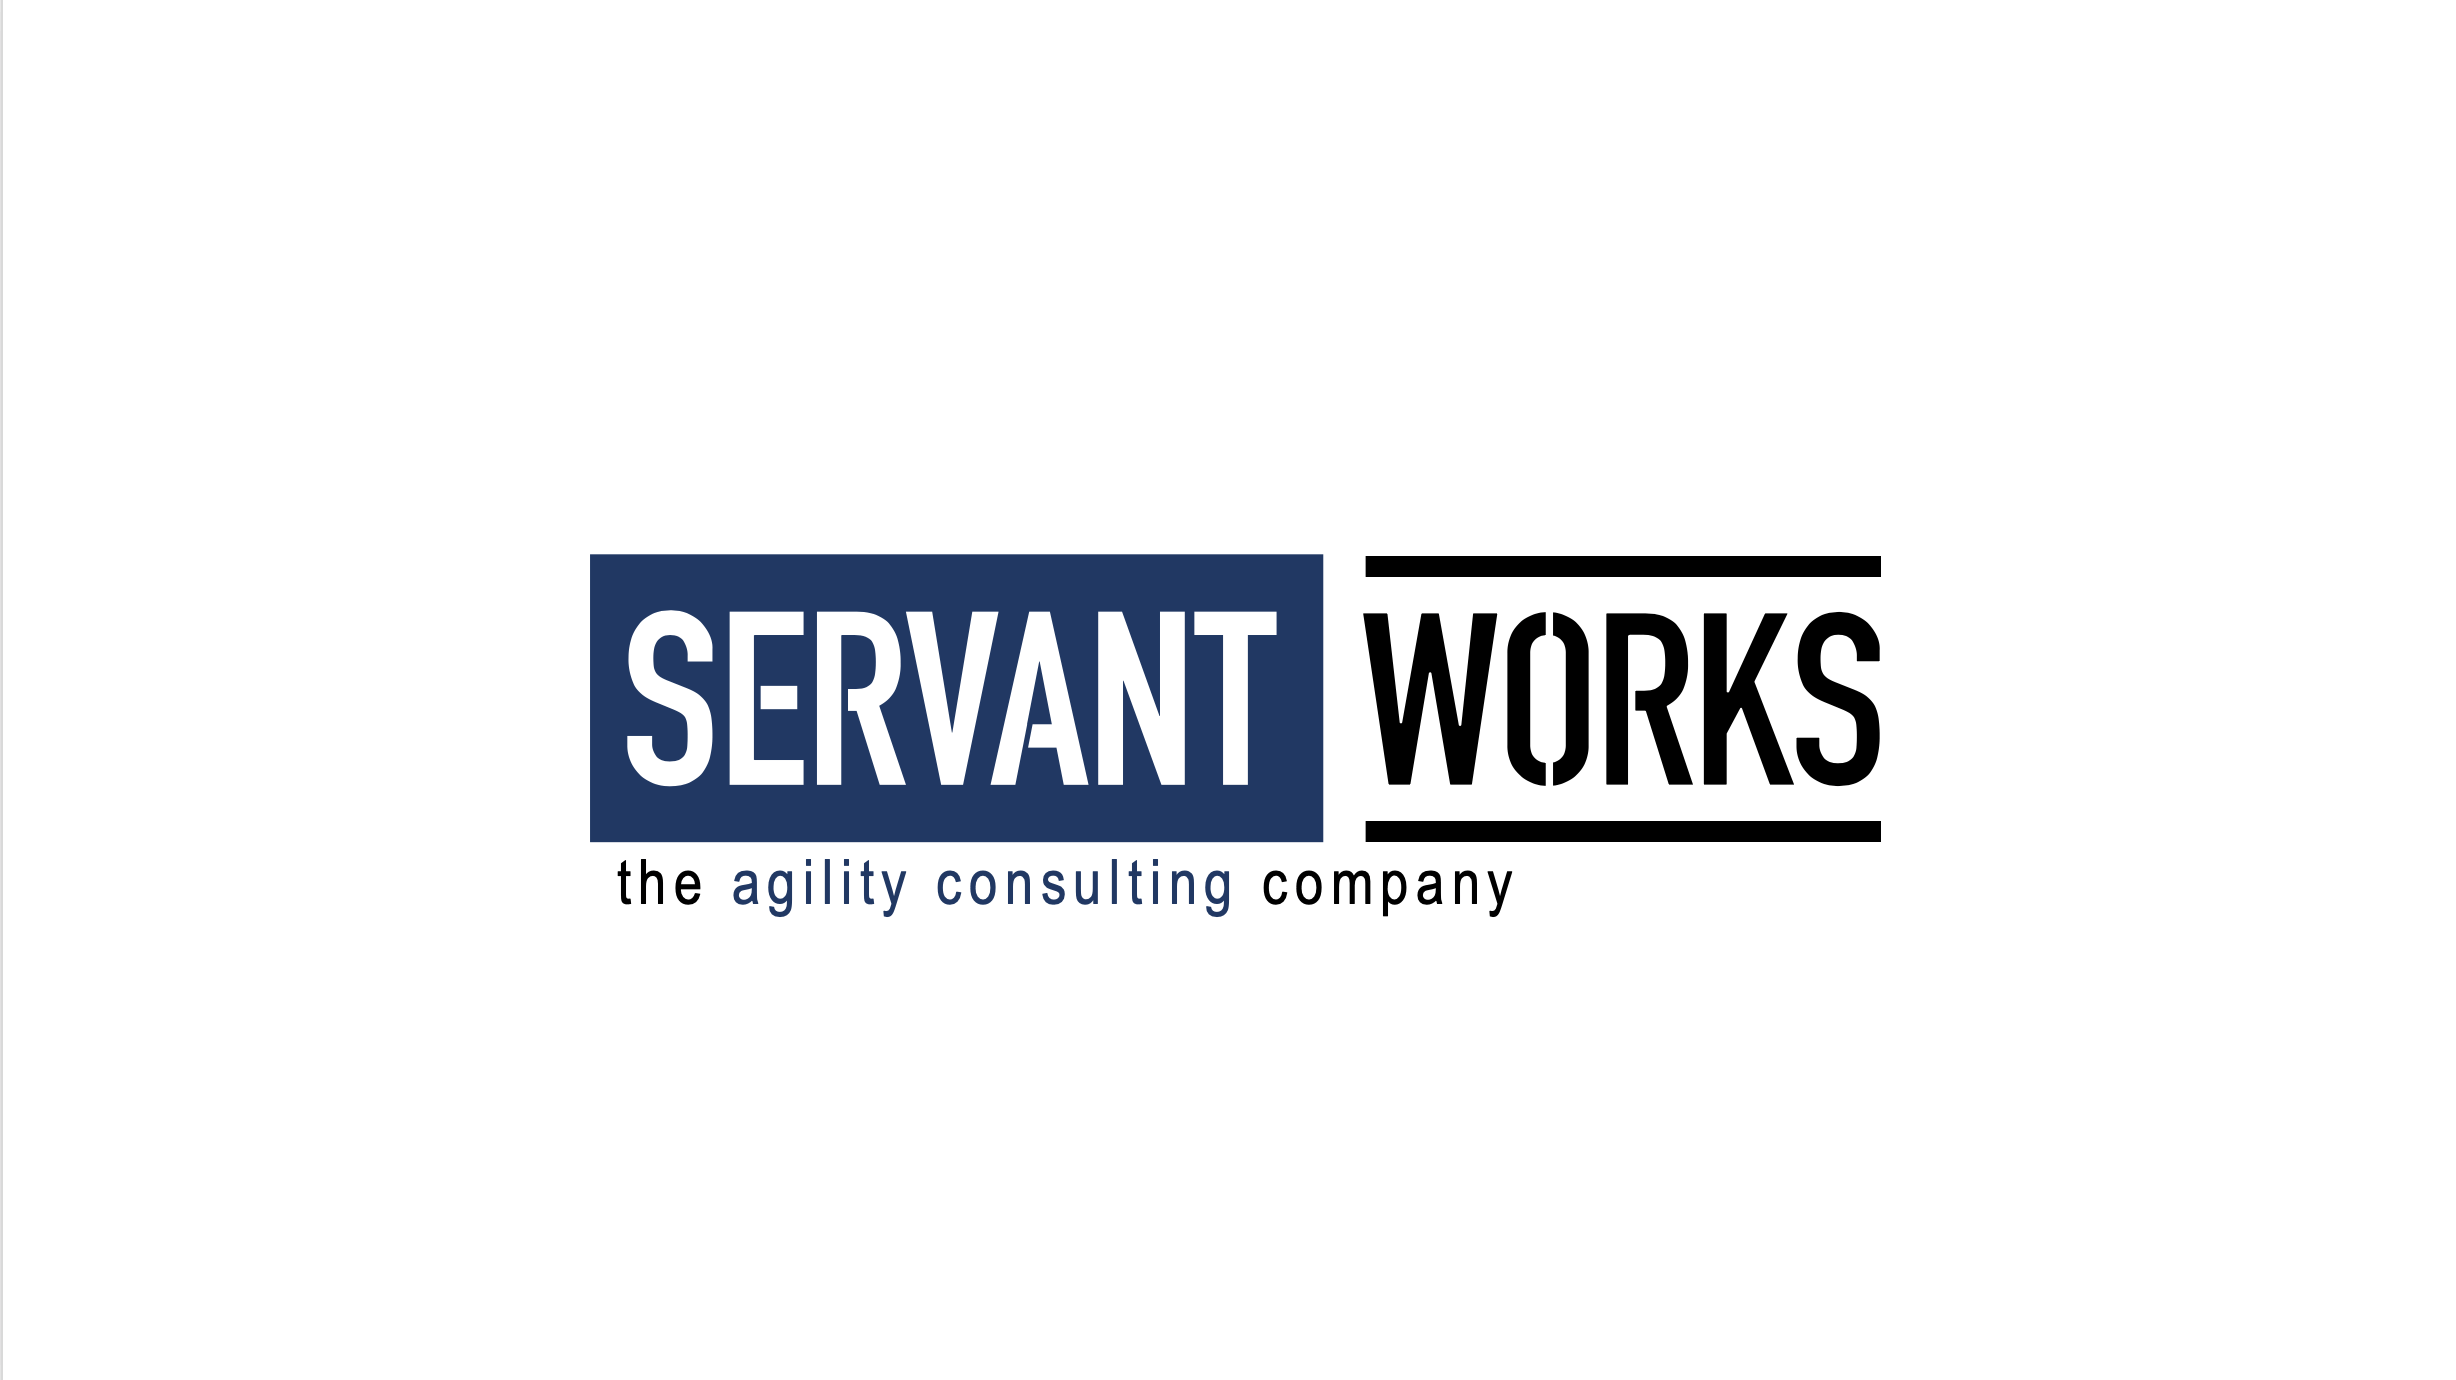 Servant Works Inc.